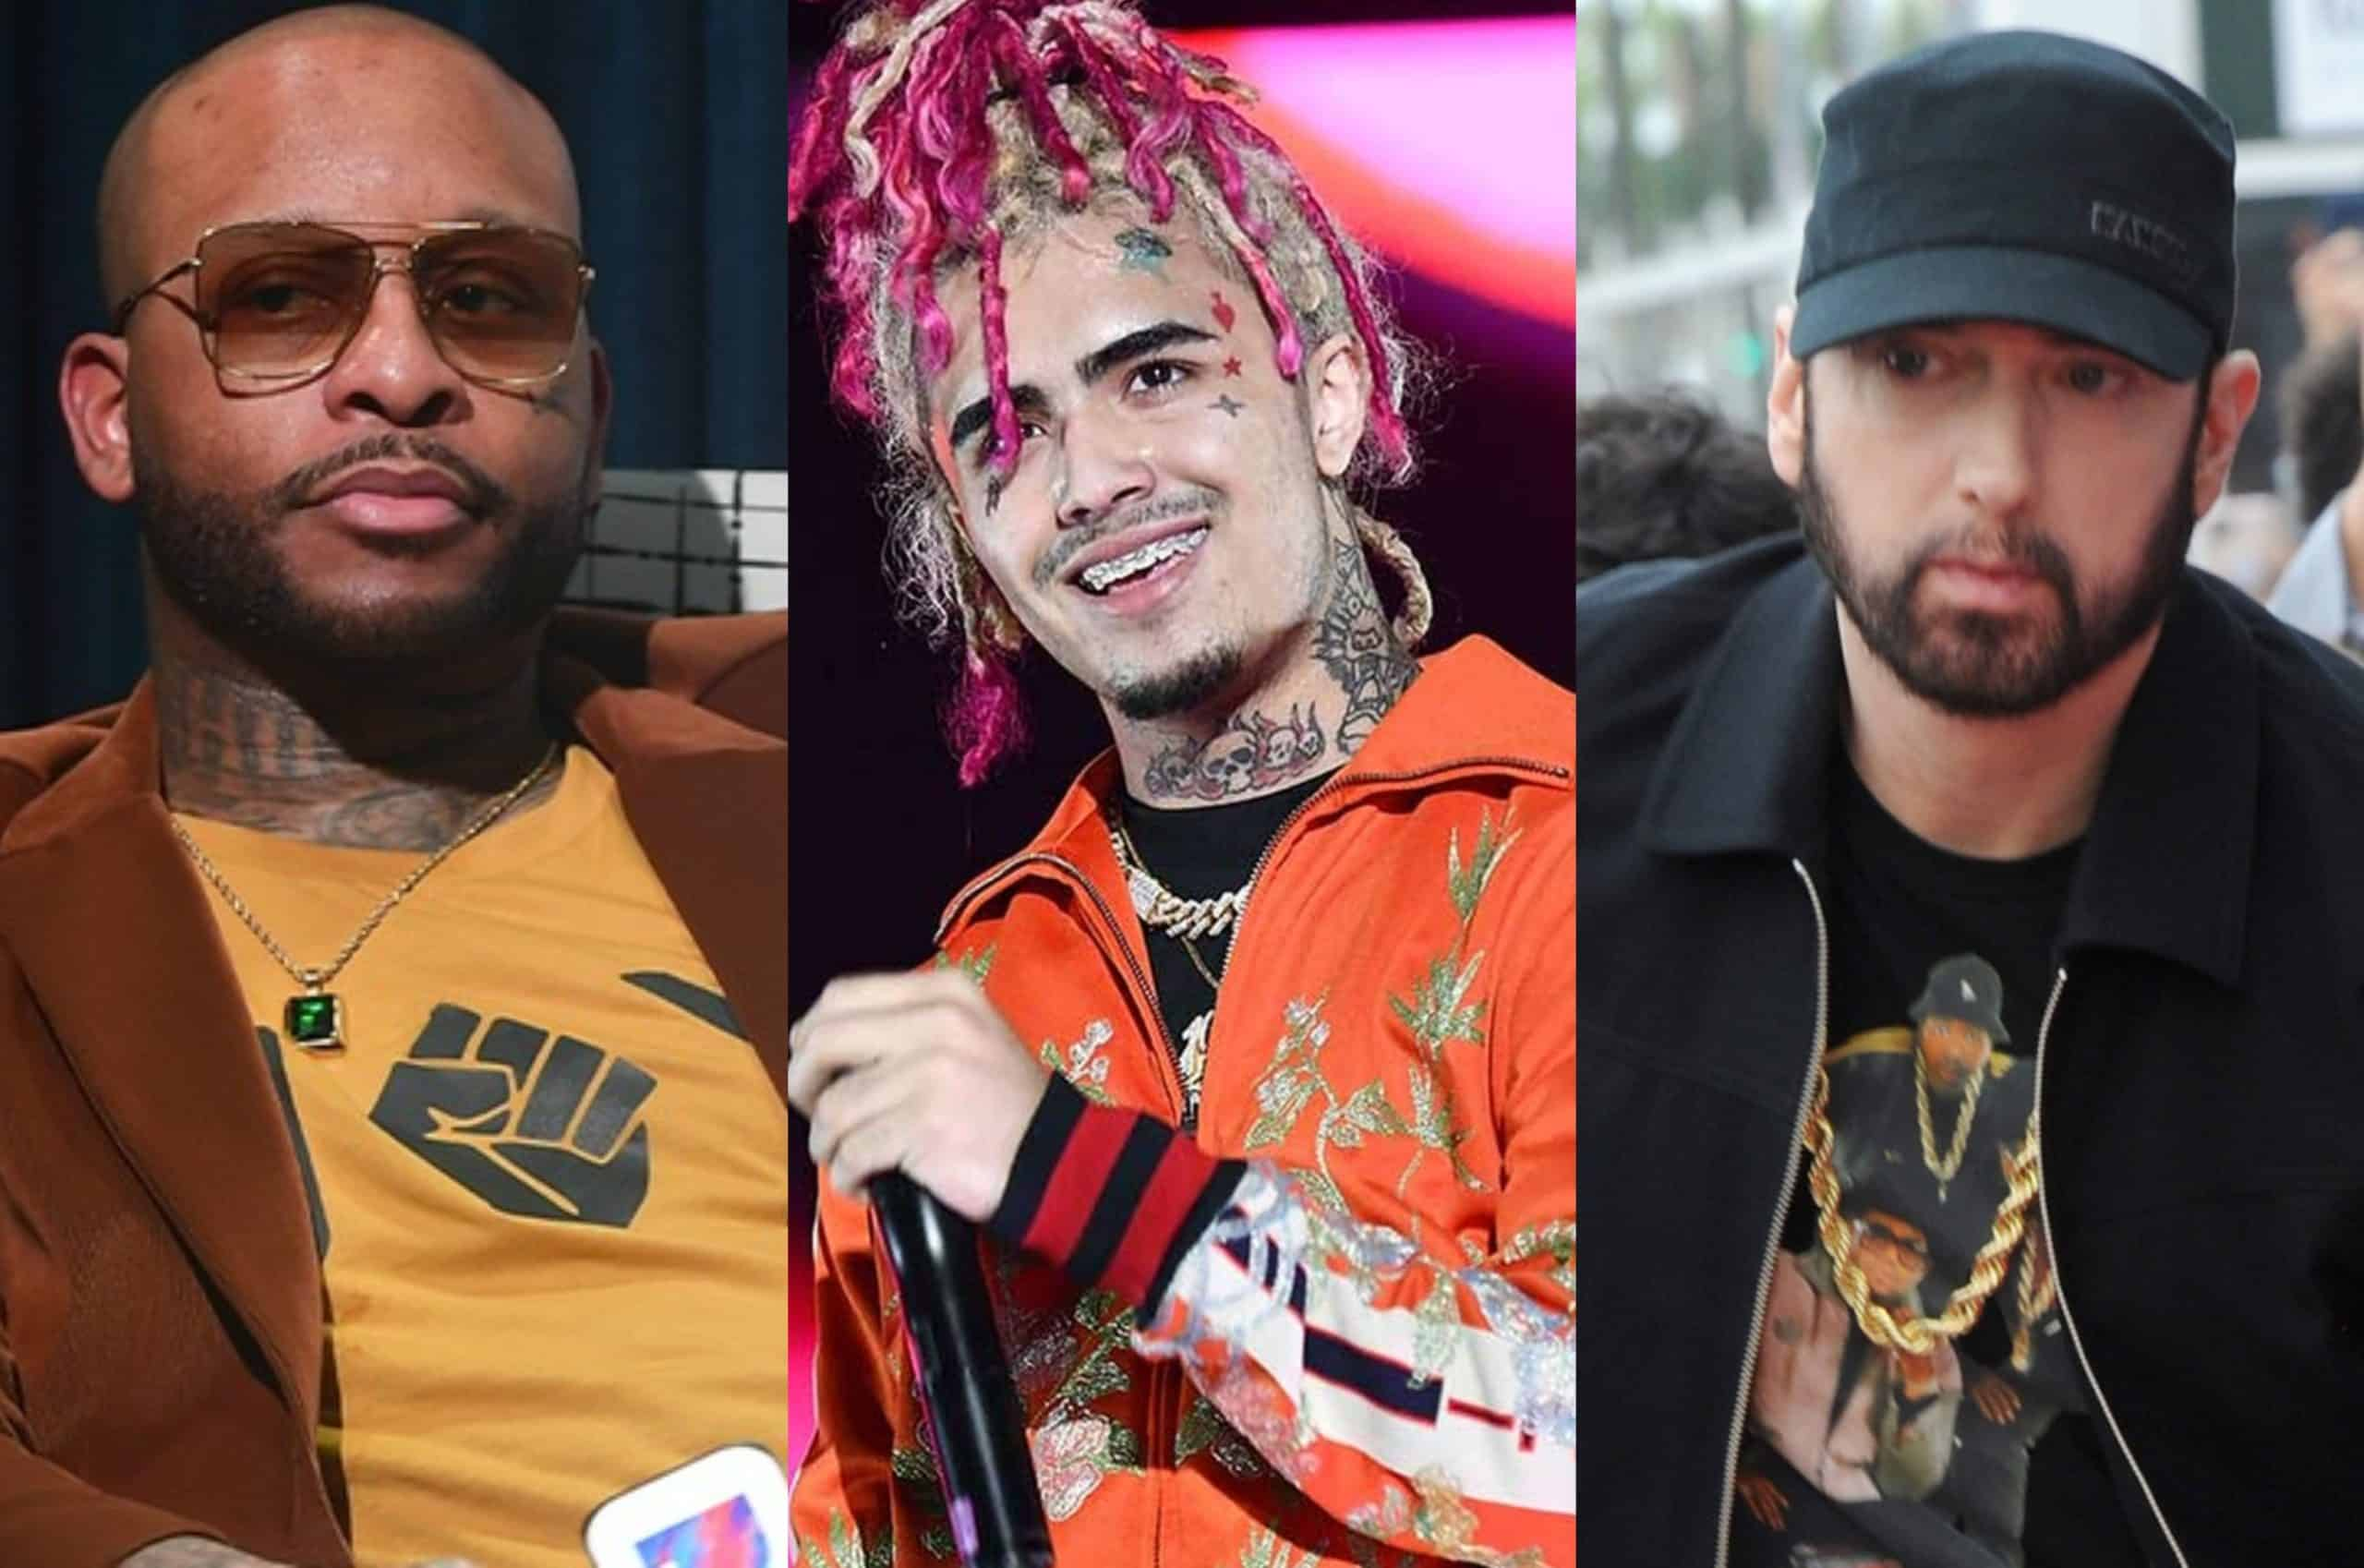 """Royce da 5'9"""" Reacts To Lil Pump Dissing Eminem: """"Tuff Talk From Harmless Creatures"""""""